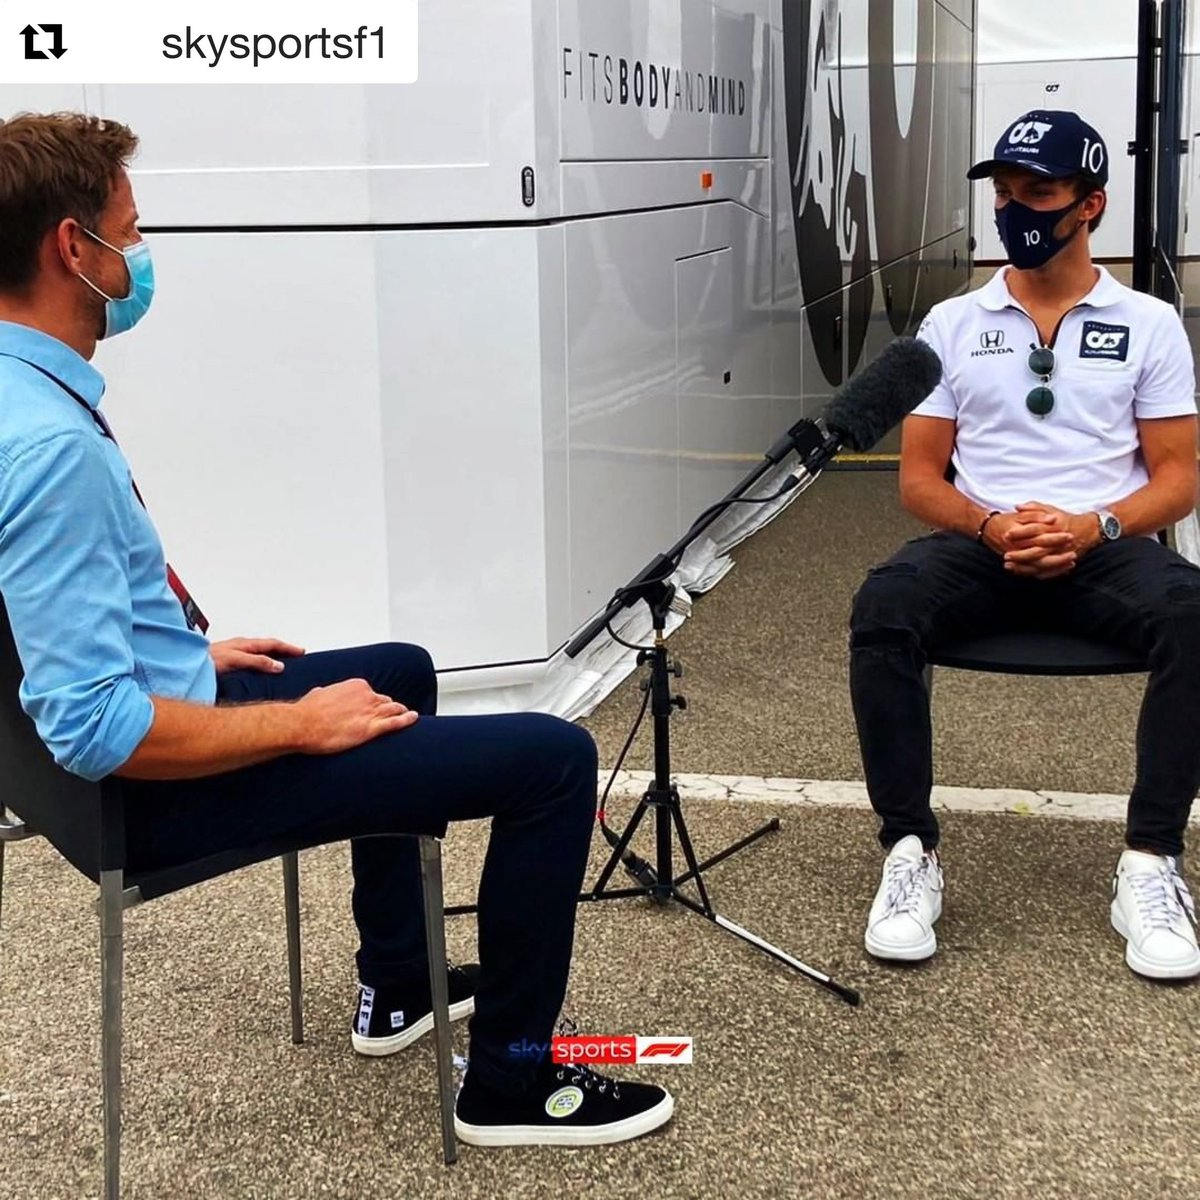 Great interview with @F1 latest Winner @PierreGASLY . Catch the chat on @SkySportsF1 this weekend. ・・・ #SkyF1 #F1 #Formula1 #TuscanGP #F12020 #Gasly #JensonButton #jb22 https://t.co/UhDgQMBFeA